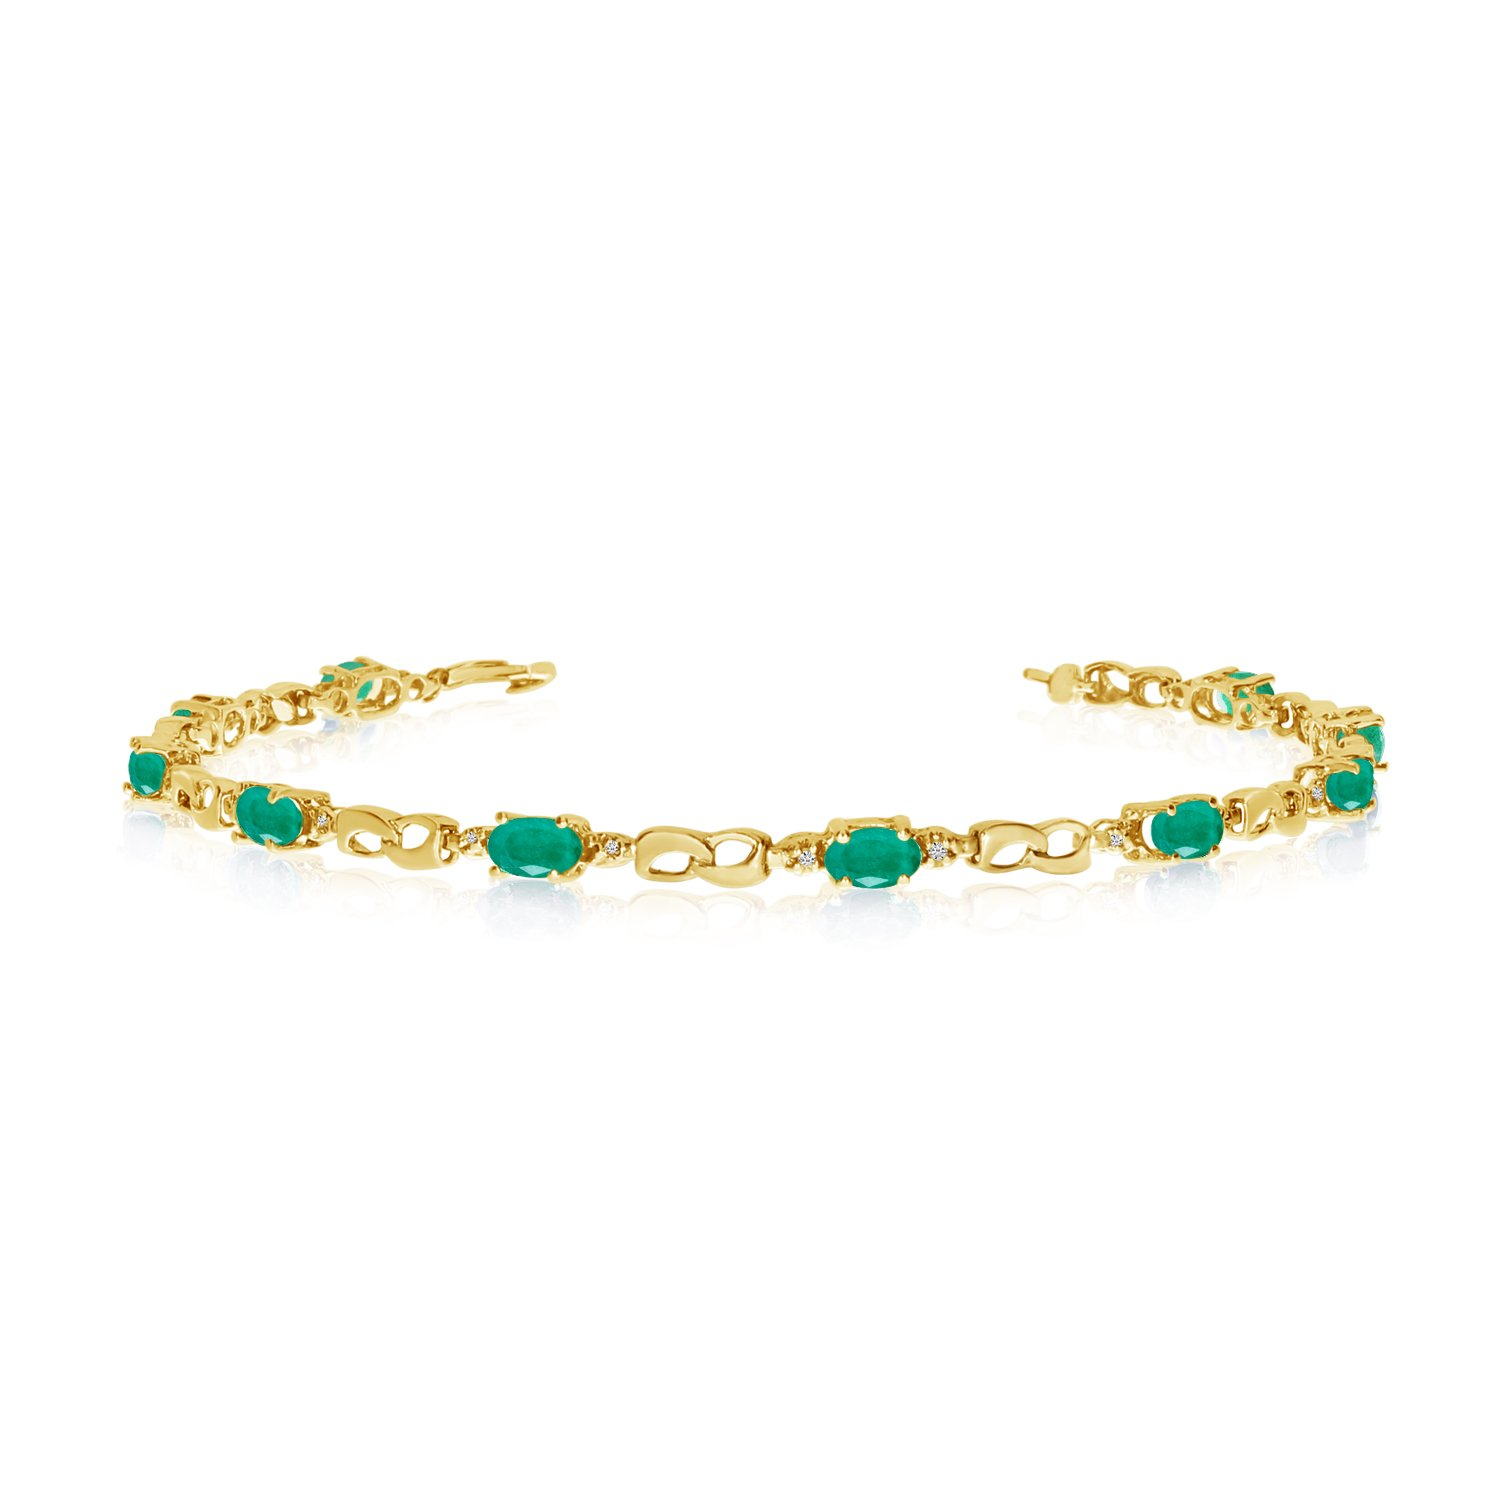 10K Yellow Gold Oval Emerald and Diamond Link Bracelet (8 Inch Length)